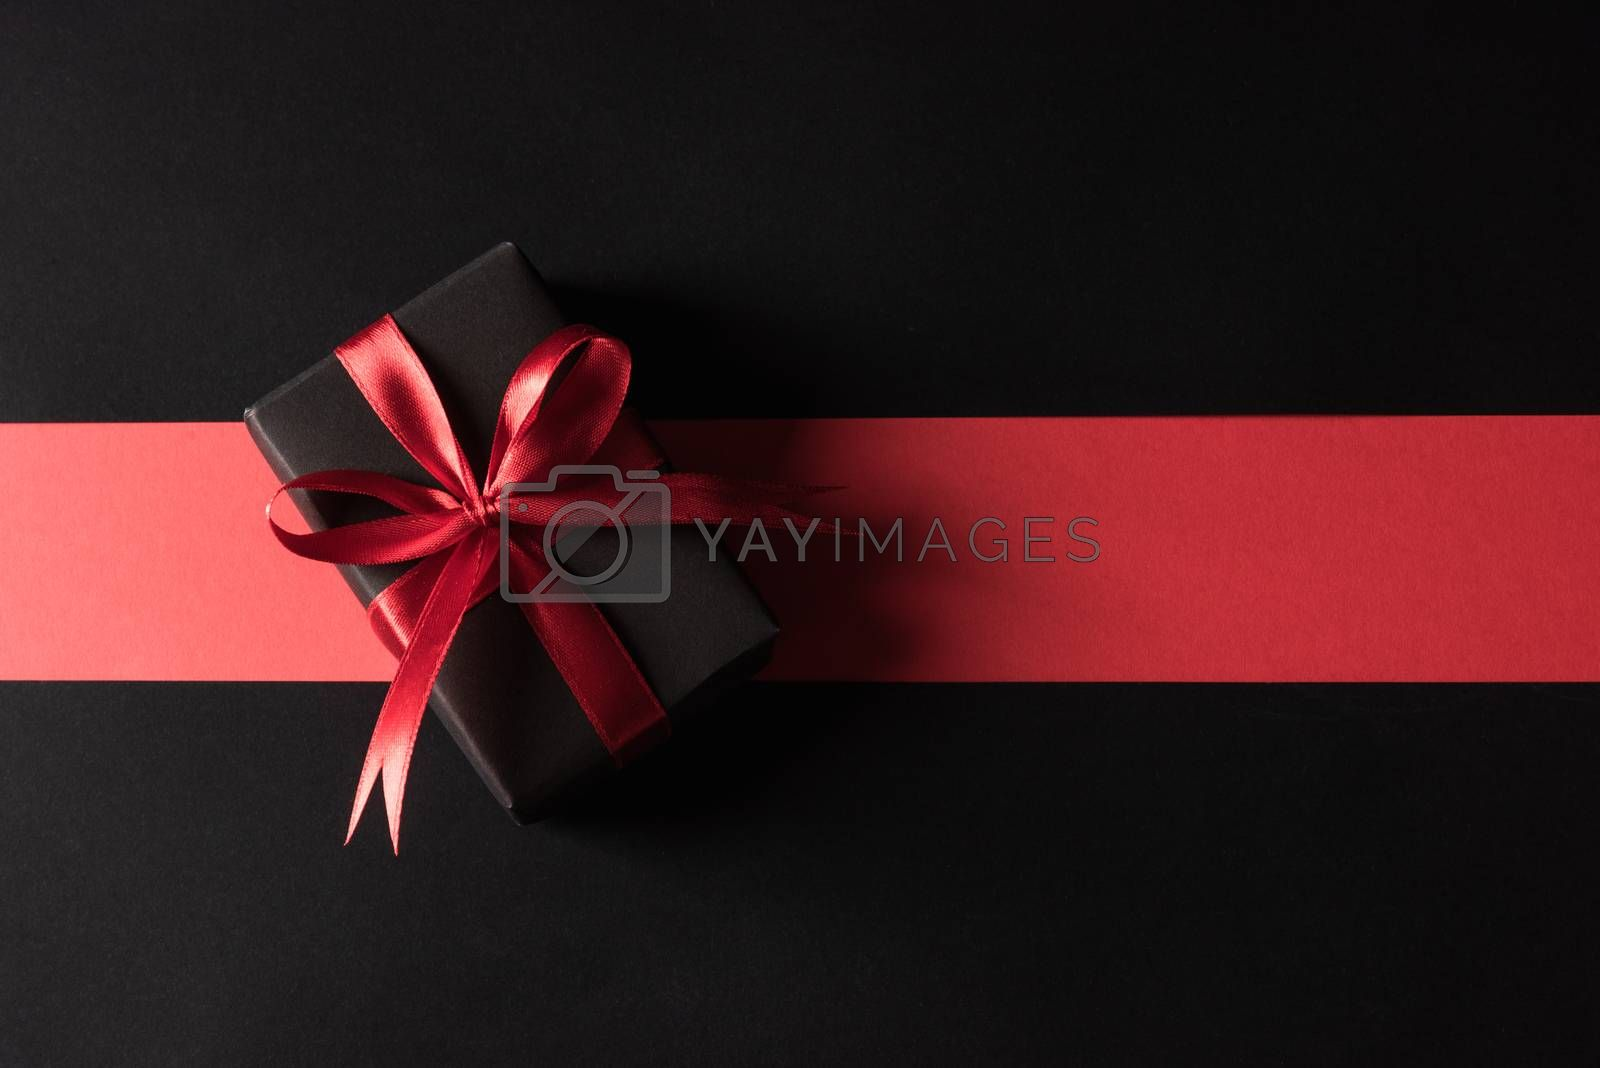 Black Friday sale shopping and Boxing Day concept, Gift box wrapped black paper and red bow ribbon present, studio shot isolated on red and dark background